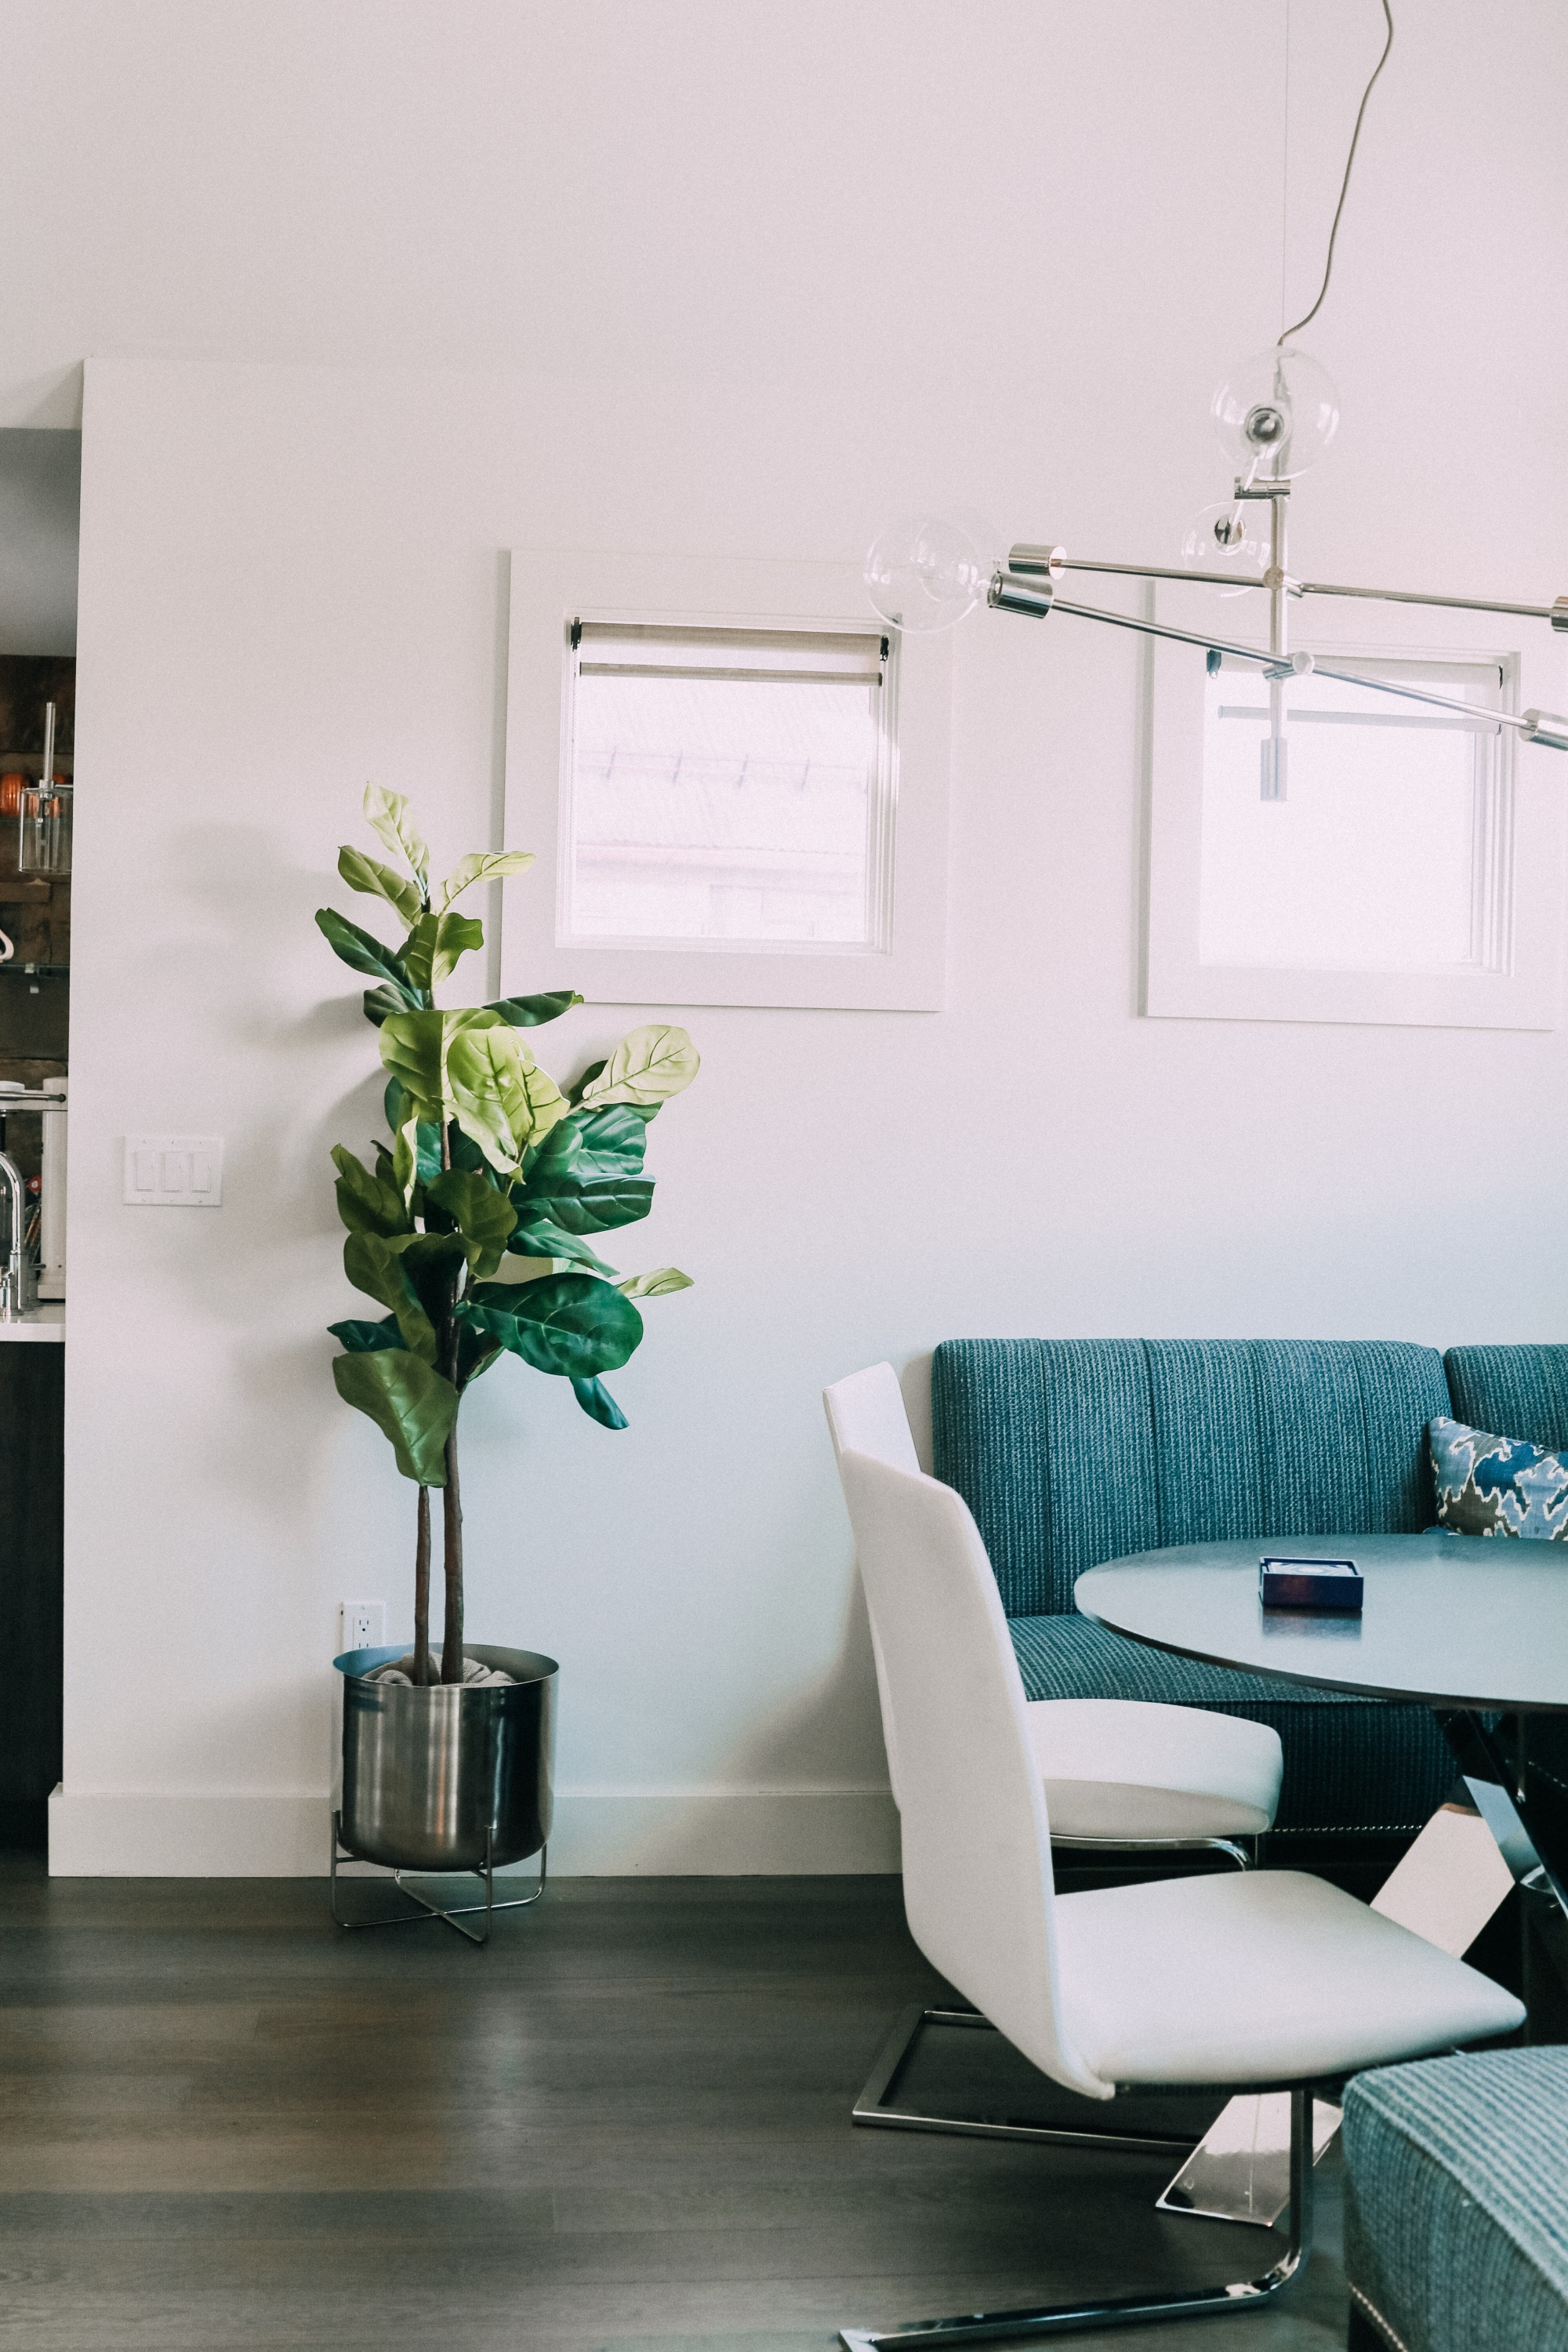 faux fiddle leaf fig tree and silver midcentury pot from west elm